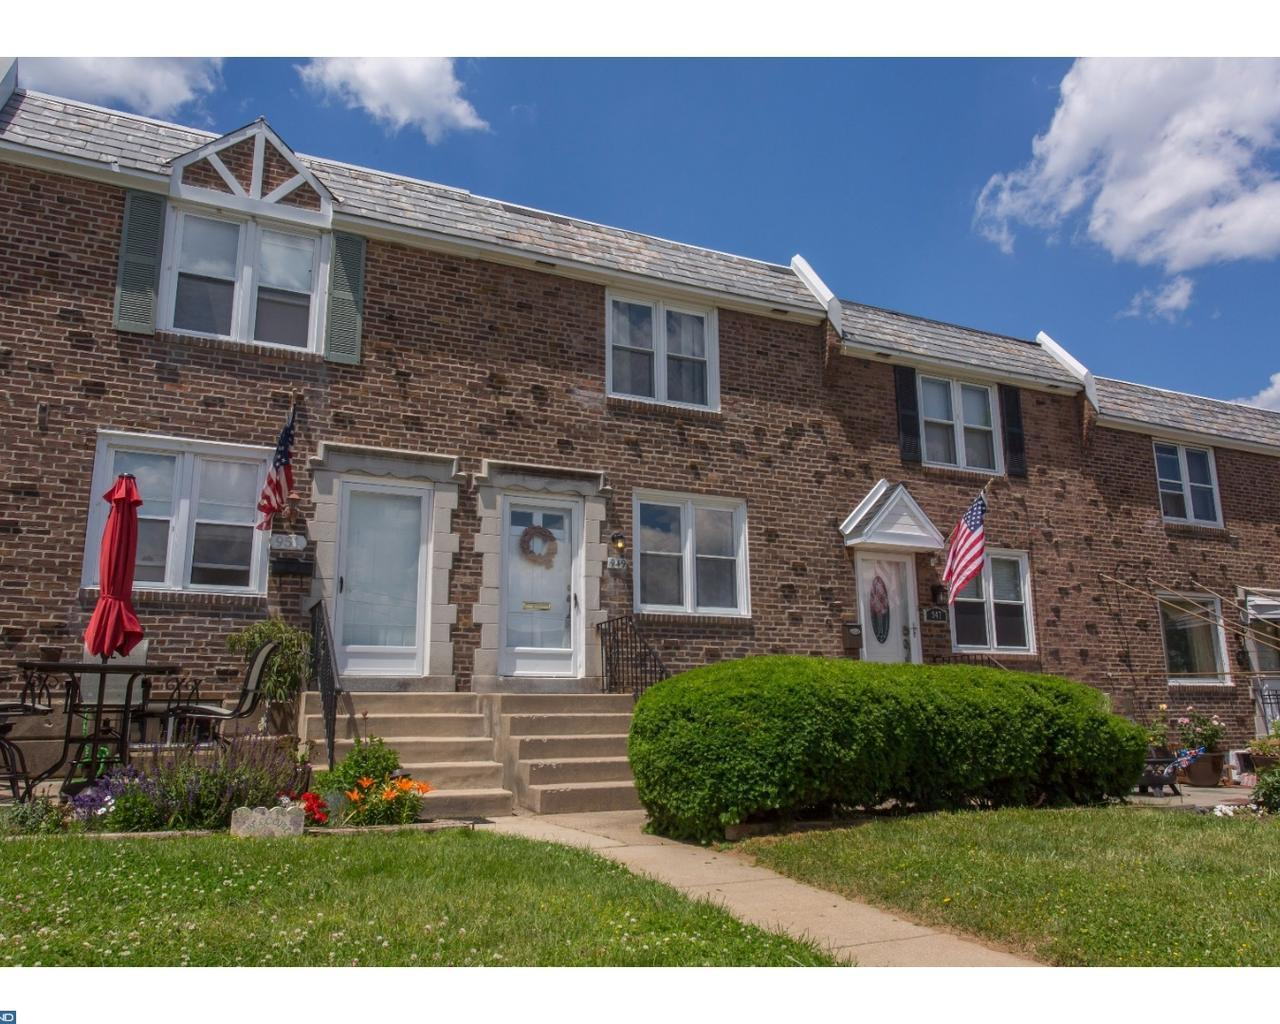 949 Brenton Rd Drexel Hill Pa Mls 7005676 Better Homes And Gardens Real Estate